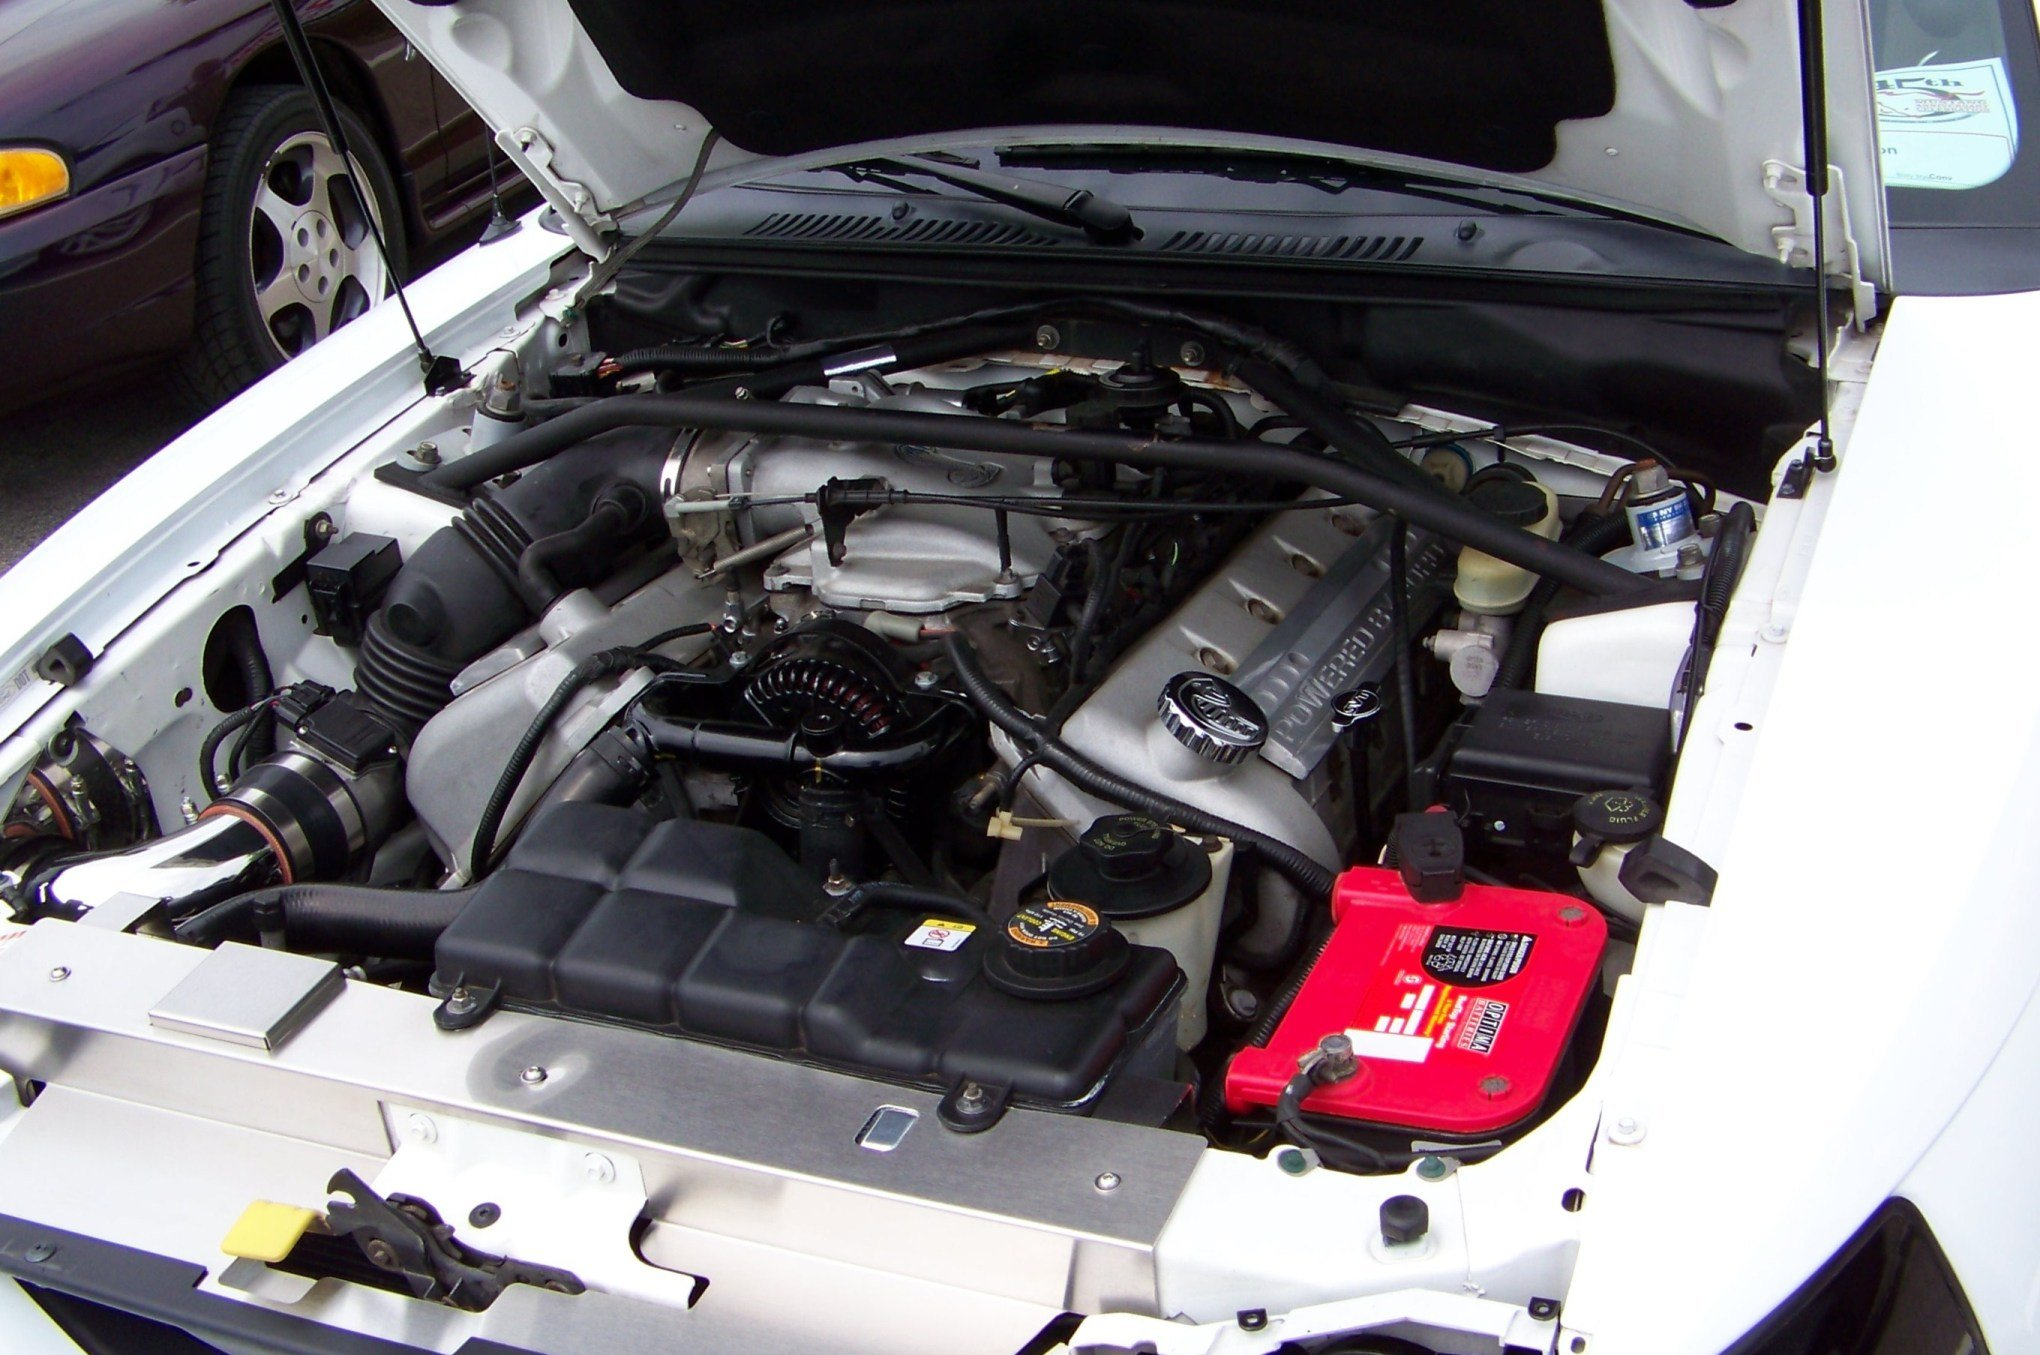 2001 Mustang, how to tell GT engine from Cobra engine ...